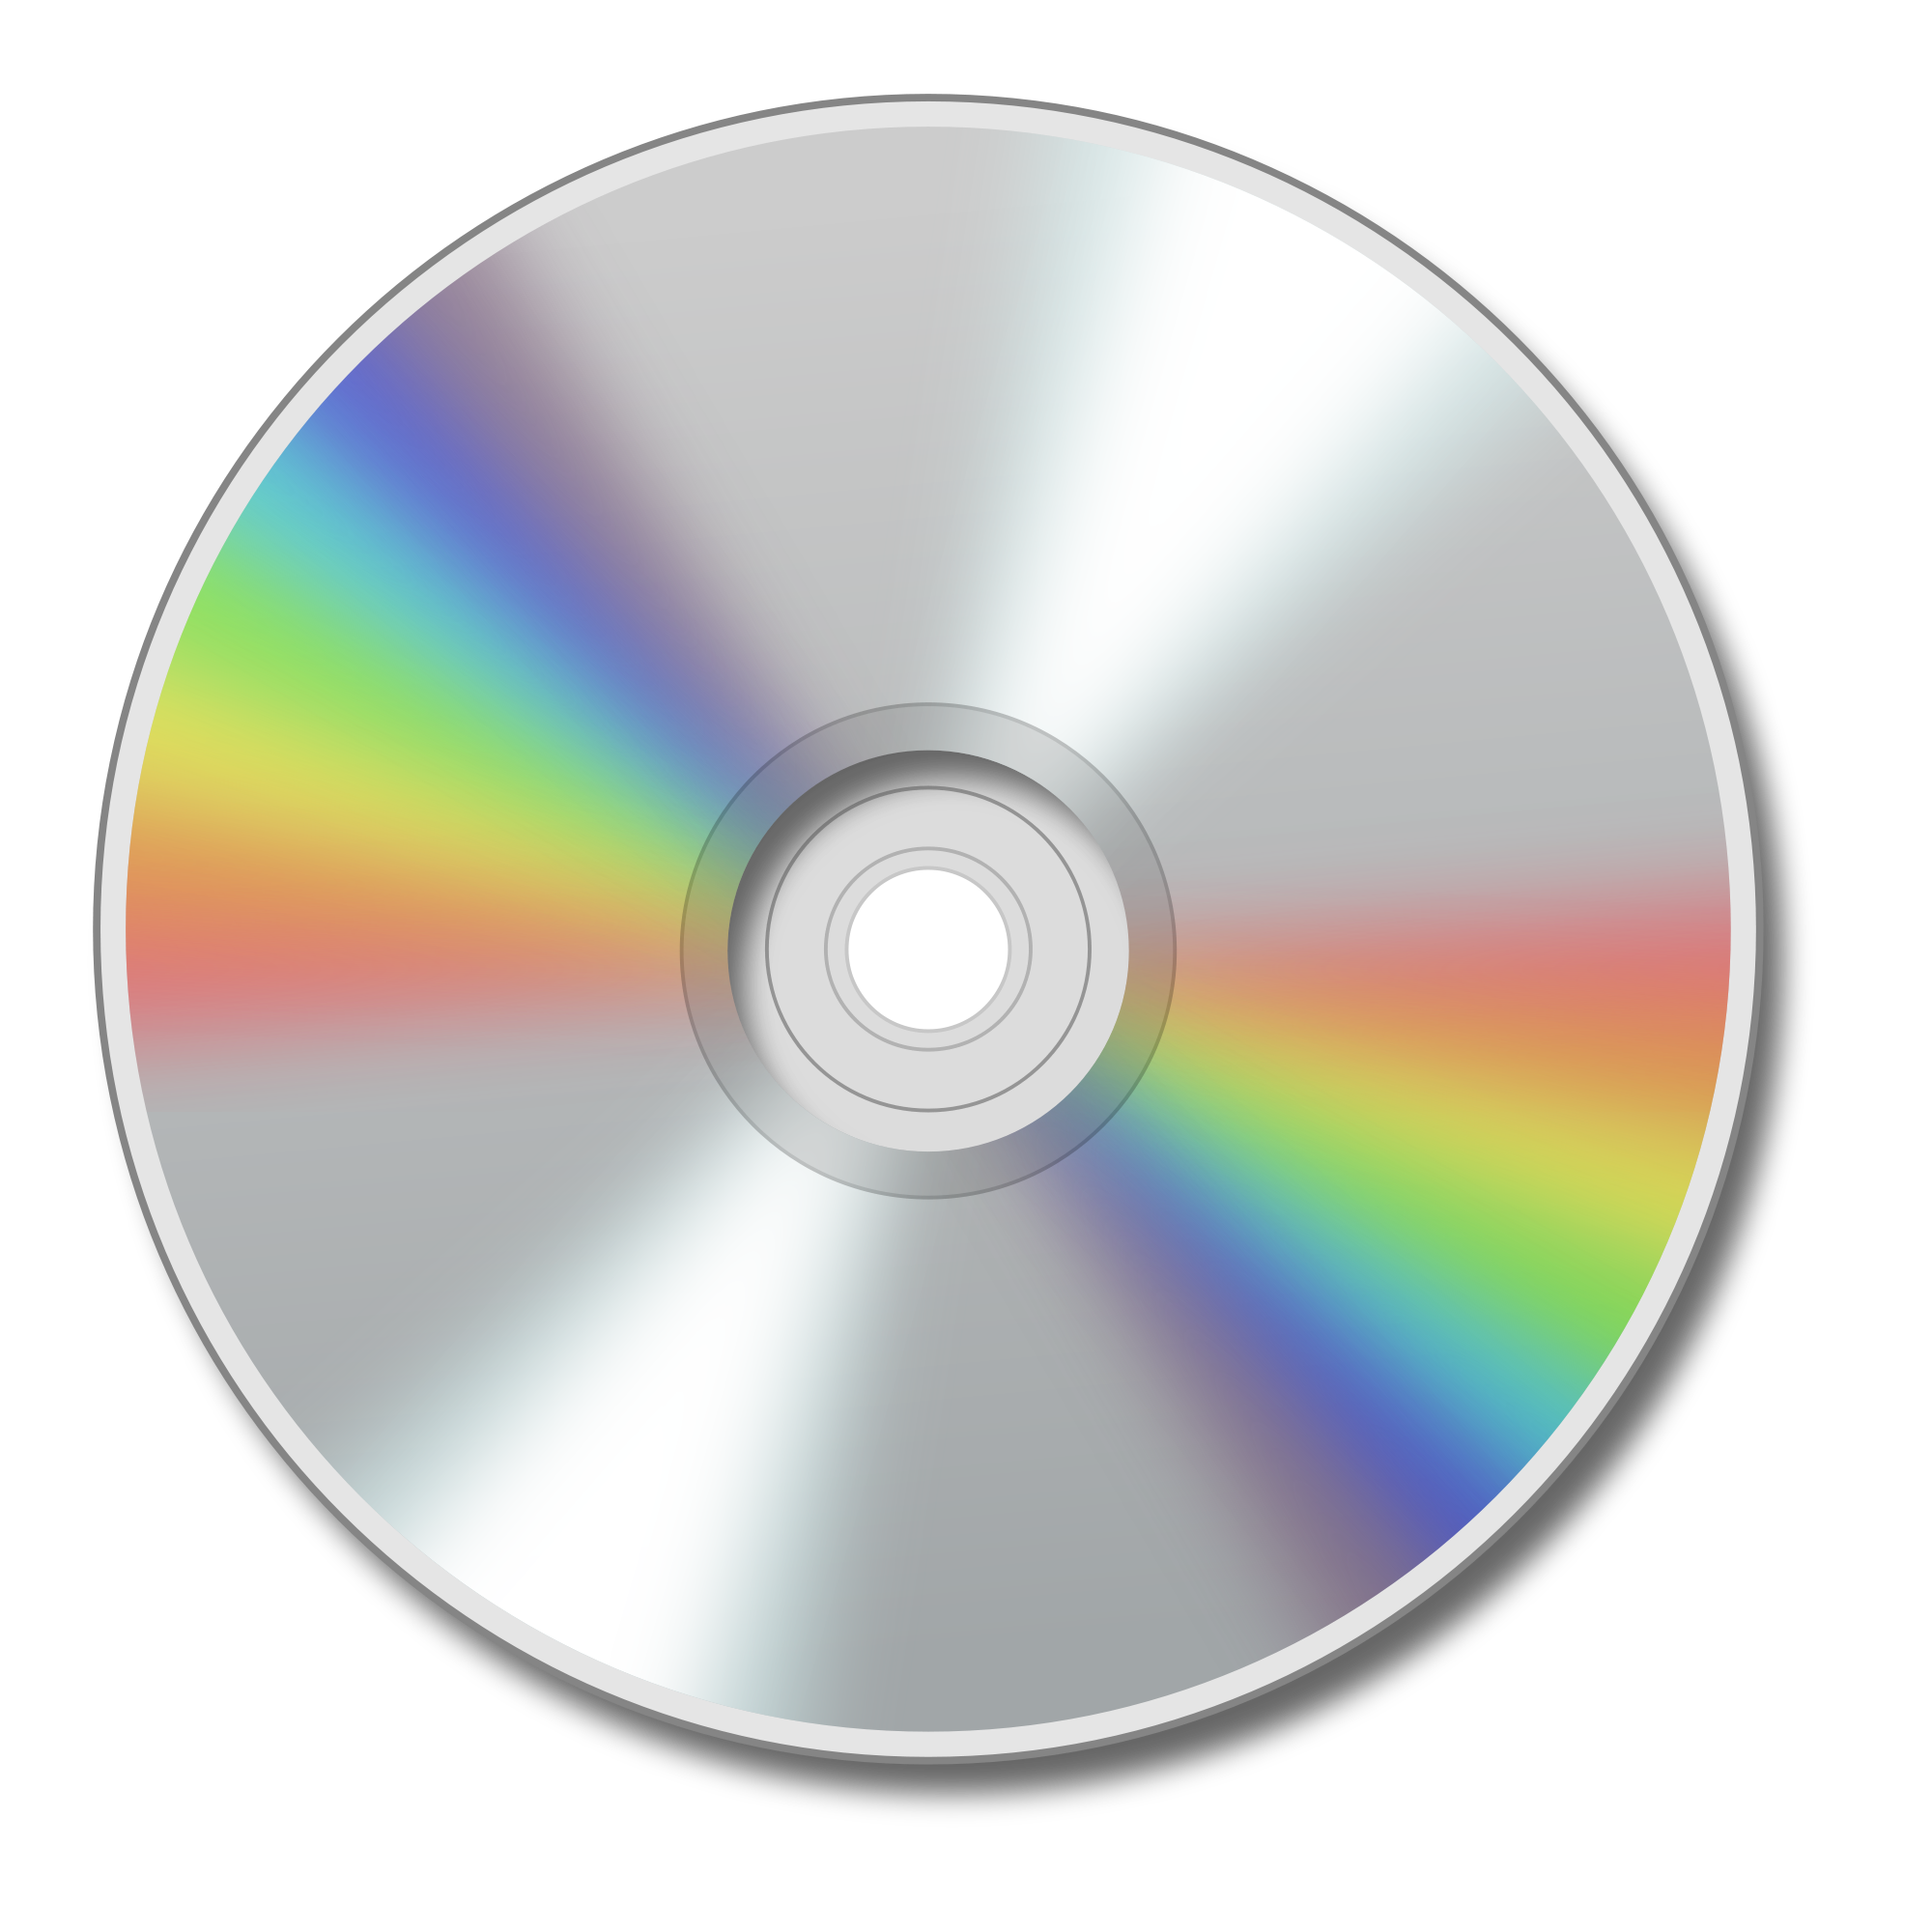 CD PNG images.